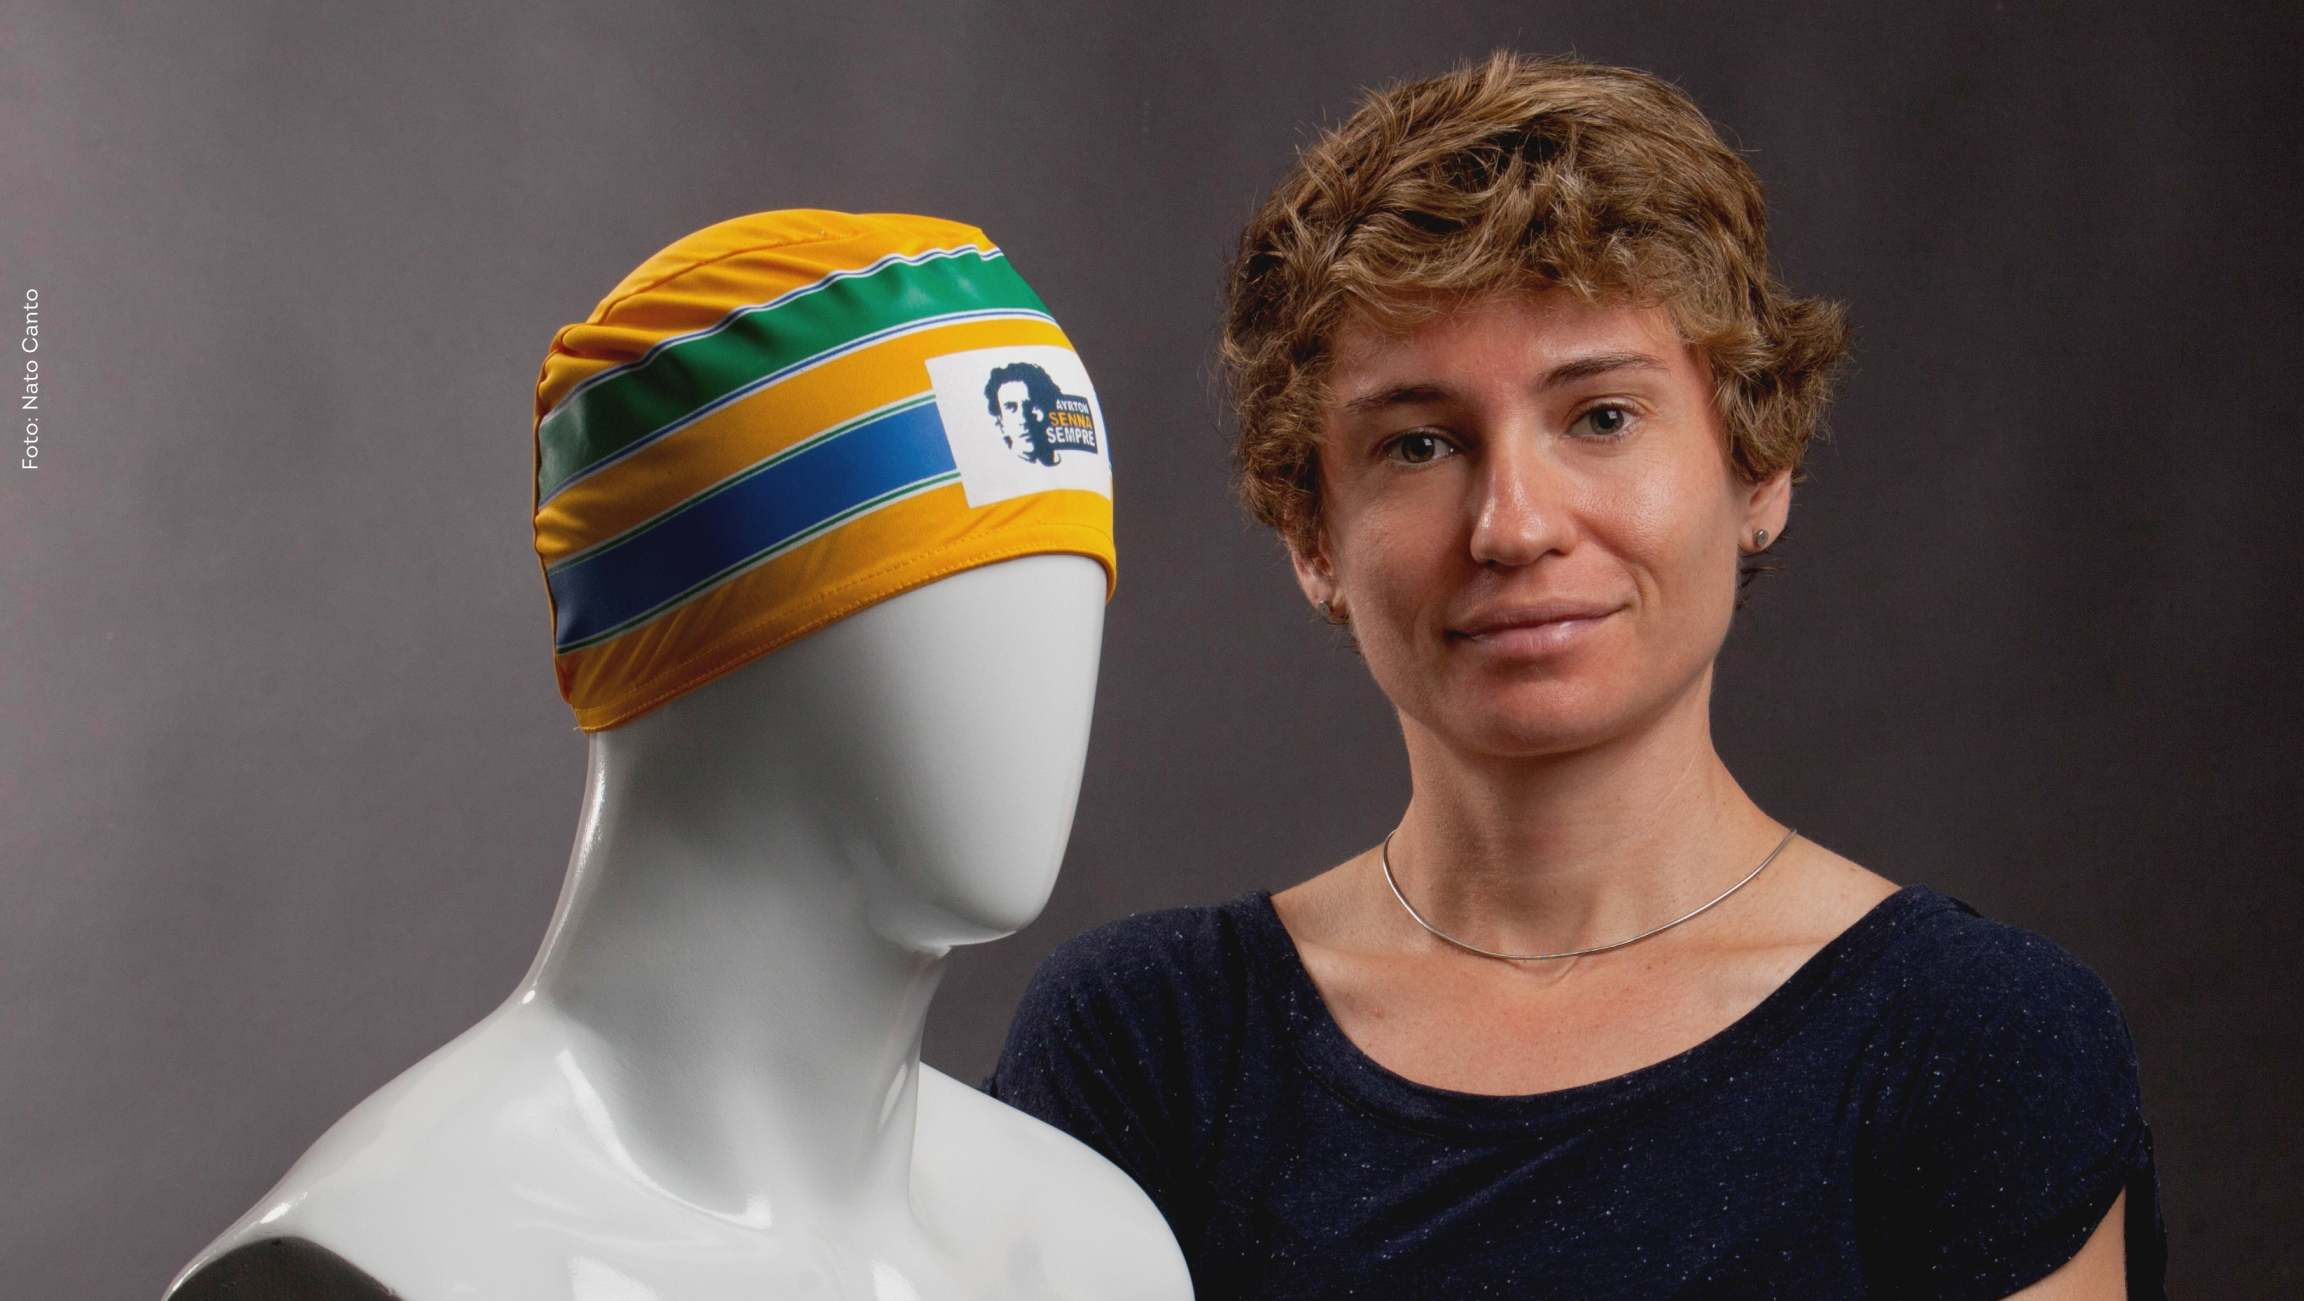 Ayrton Senna honored in Brazilian athlete's hat during the ...